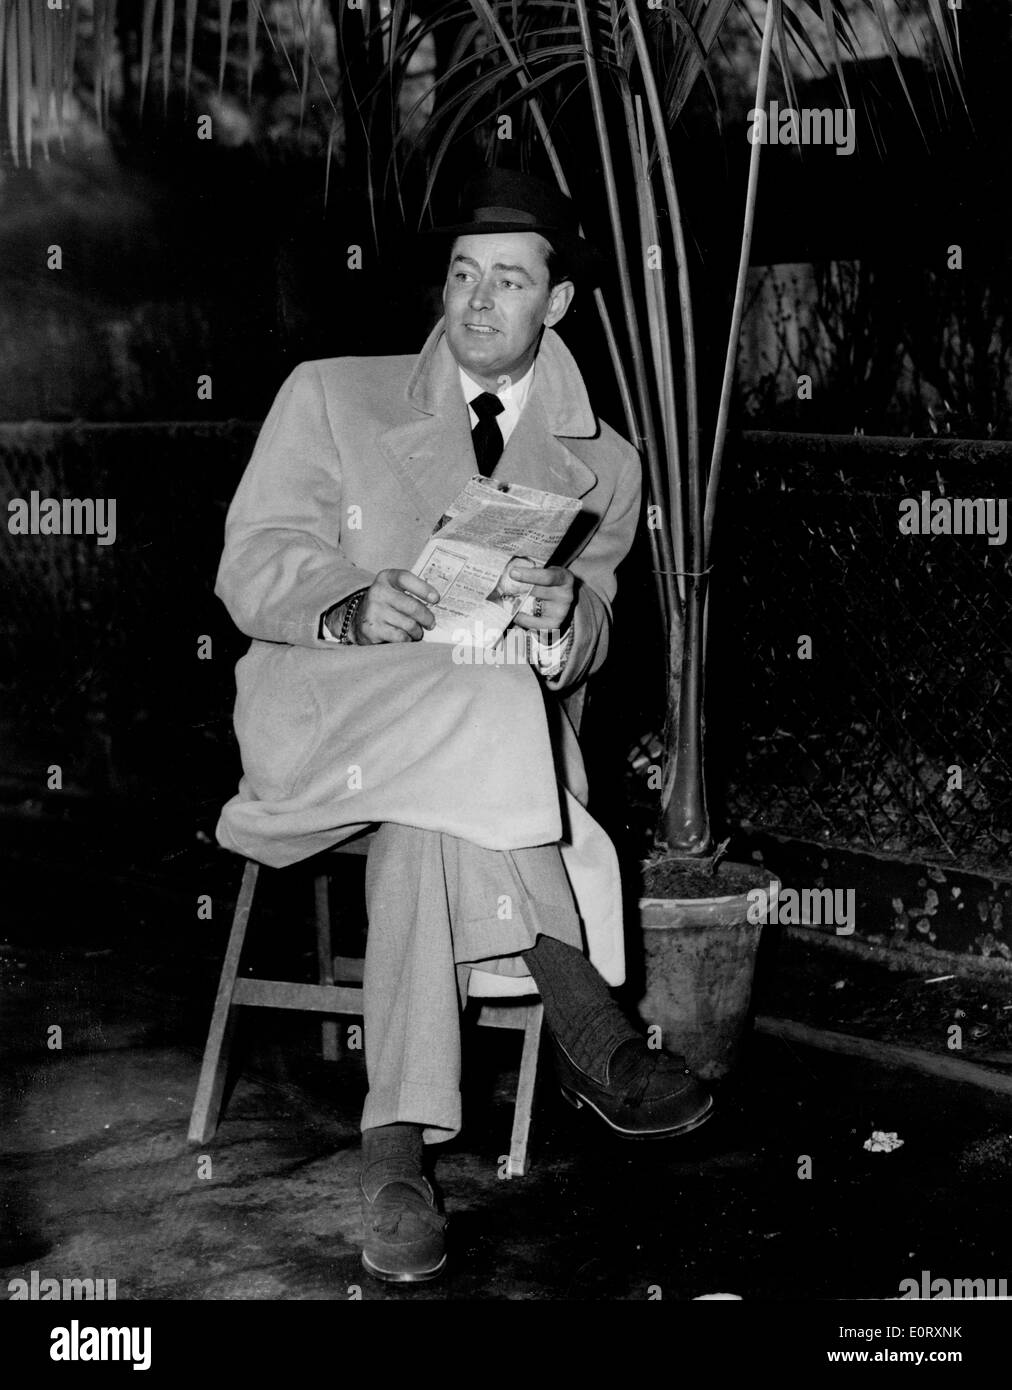 Actor Alan Ladd reads the paper in a film scene - Stock Image